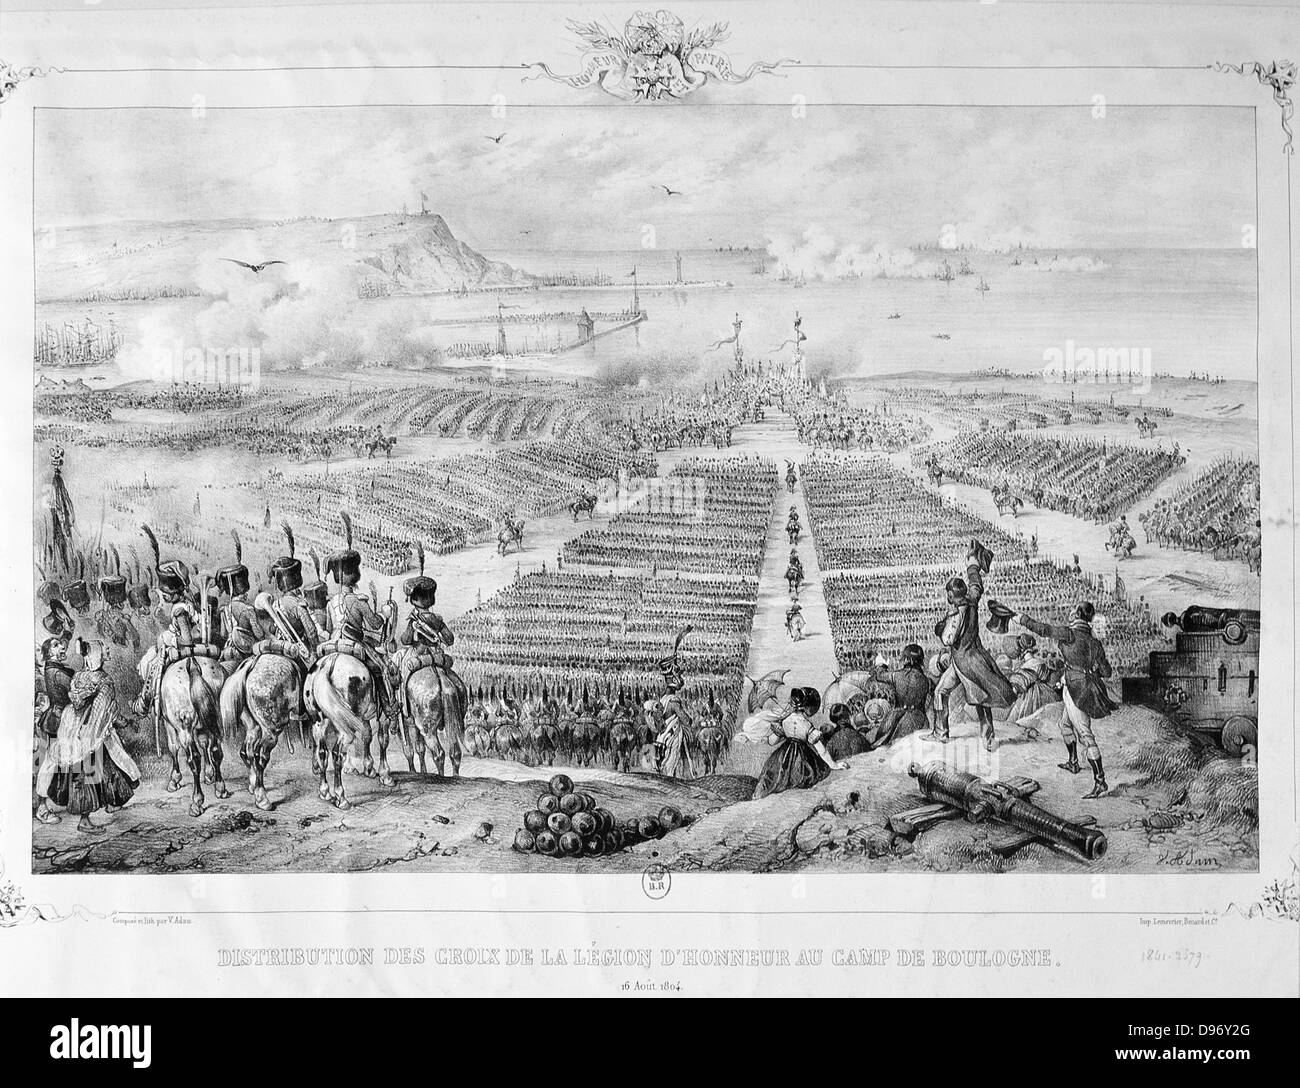 Distribution of the Cross of the Legion of Honour at Boulogne, 16 August 1804. Engraving. - Stock Image